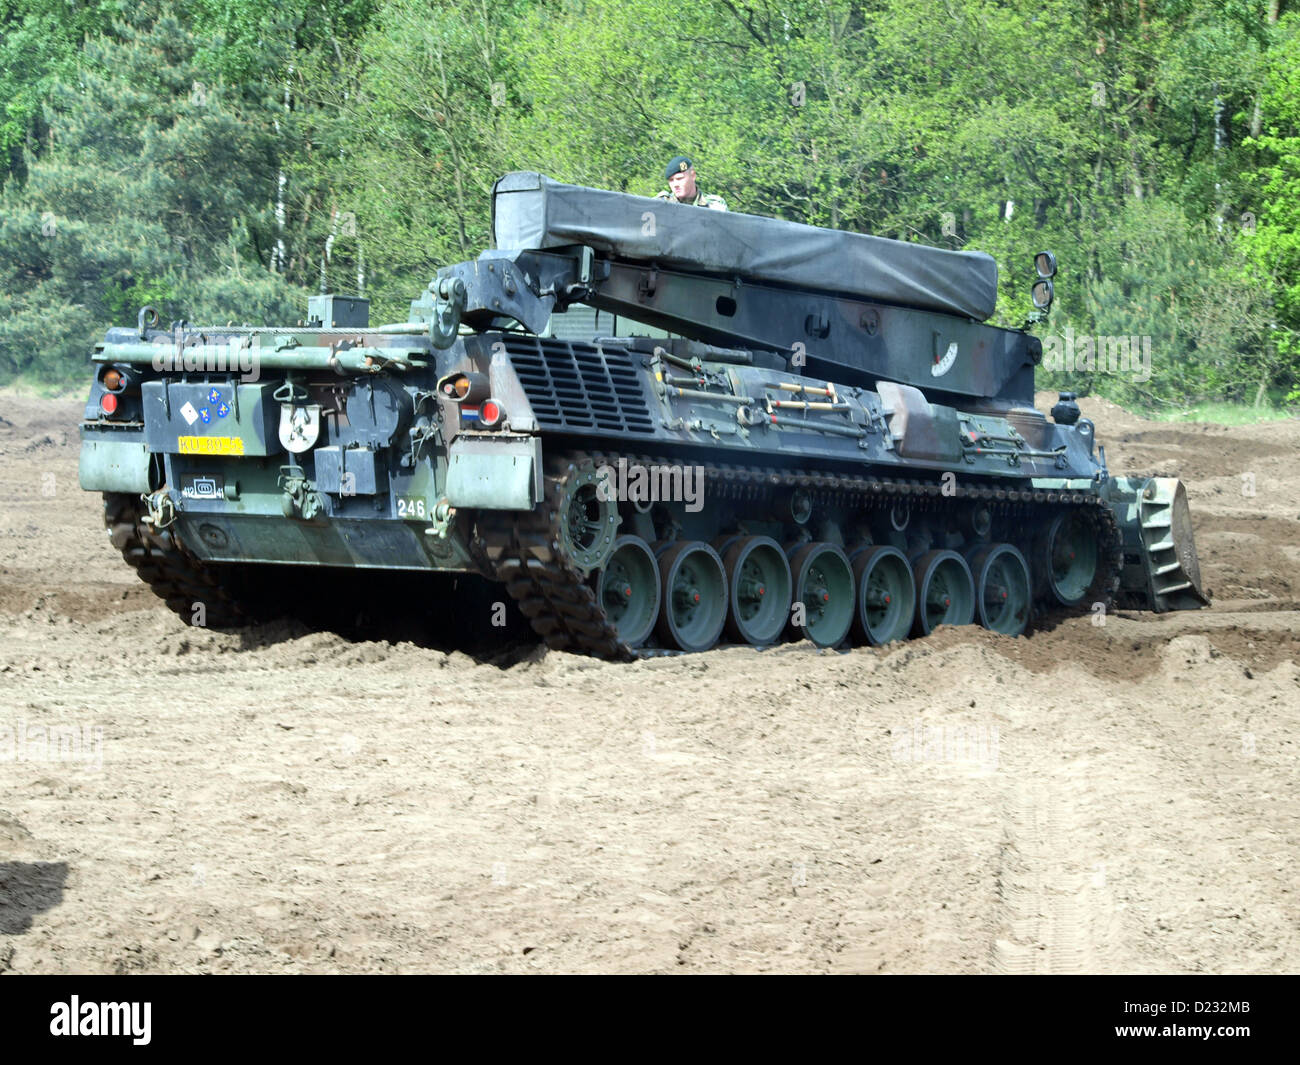 Army Open Day 2012 in the Netherlands Oirschot, Leopard 1 ARV tank Stock Photo